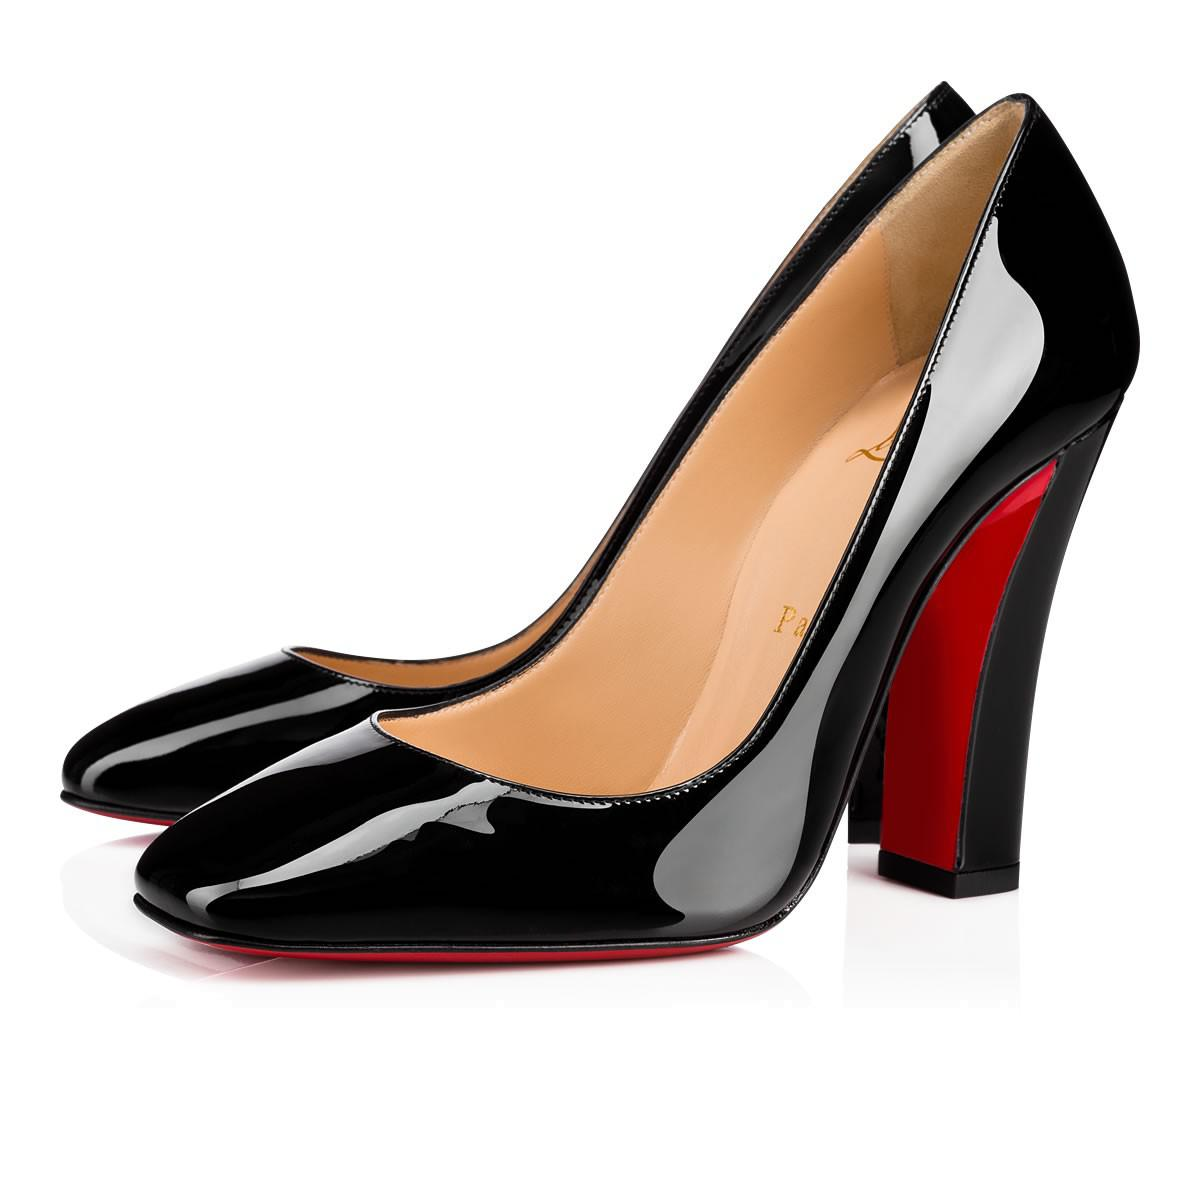 161f2984a089 Lyst - Christian Louboutin Viva Pump in Black